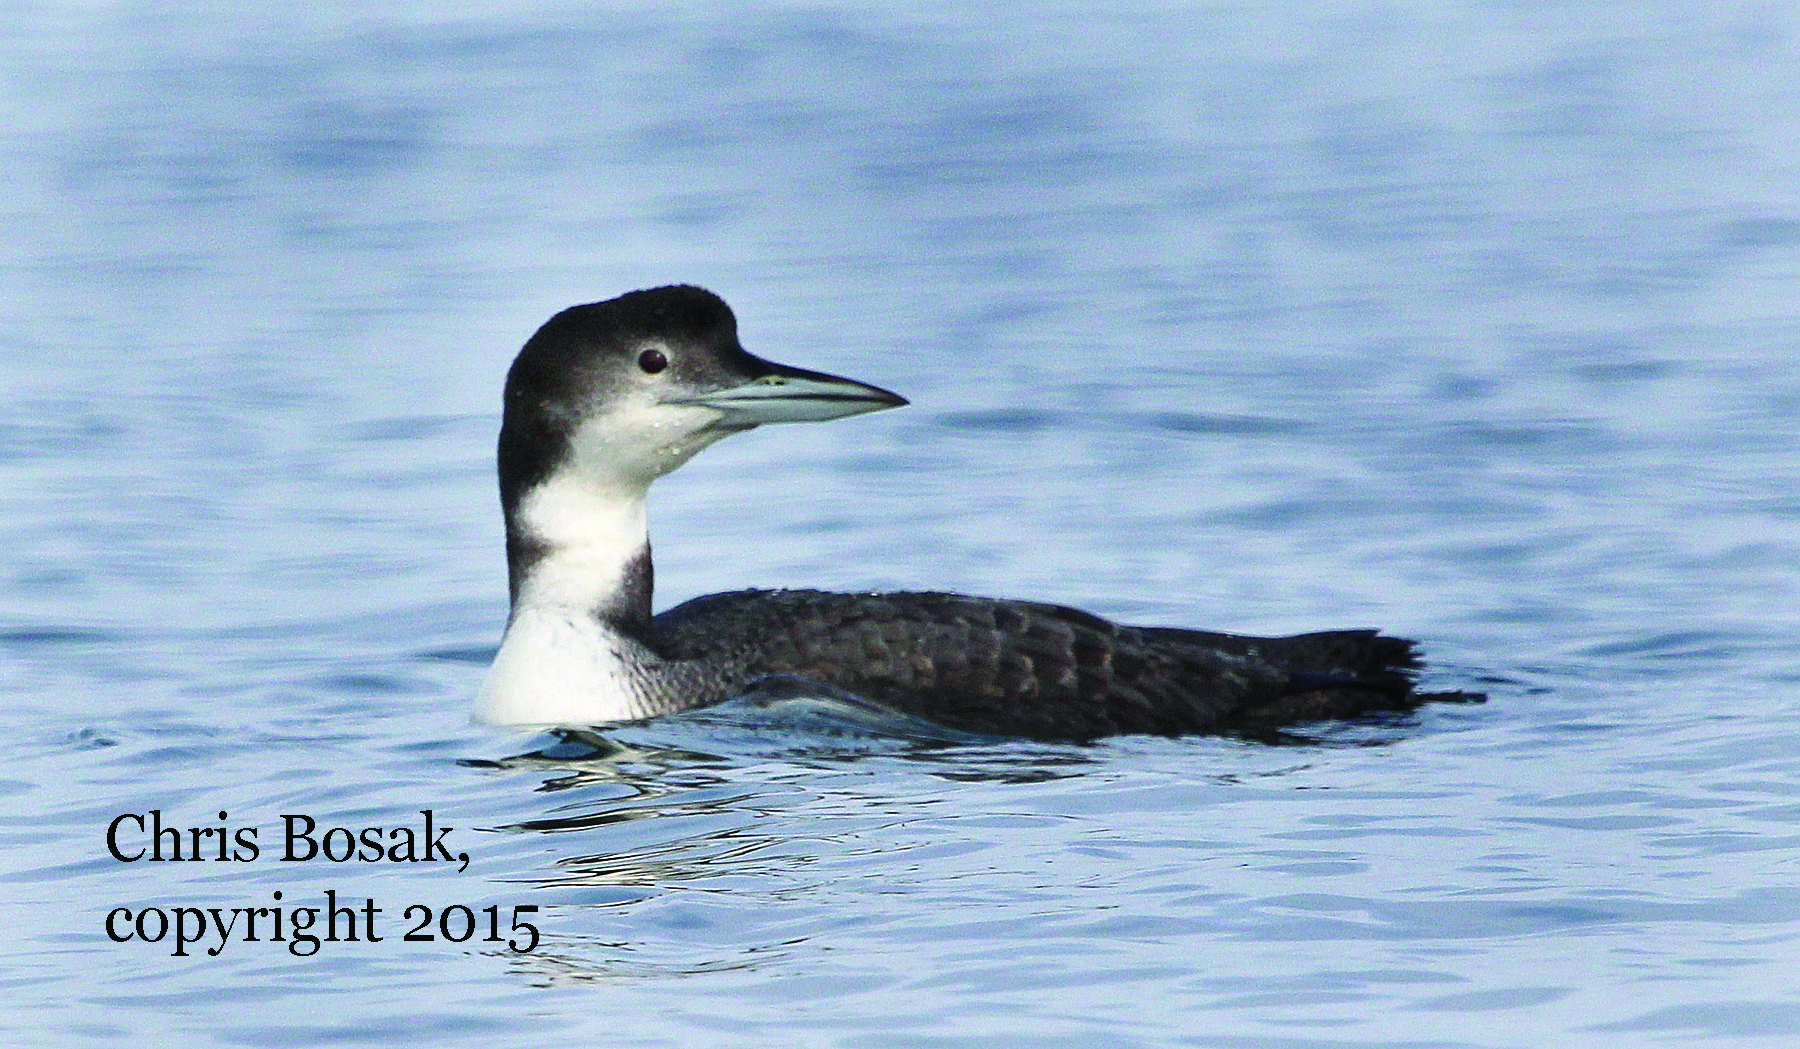 Photo by Chris Bosak A Common Loon seen during a recent winter in Long Island Sound off the coast of Norwalk, Conn. Loons feature a more drab plumage in the winter.